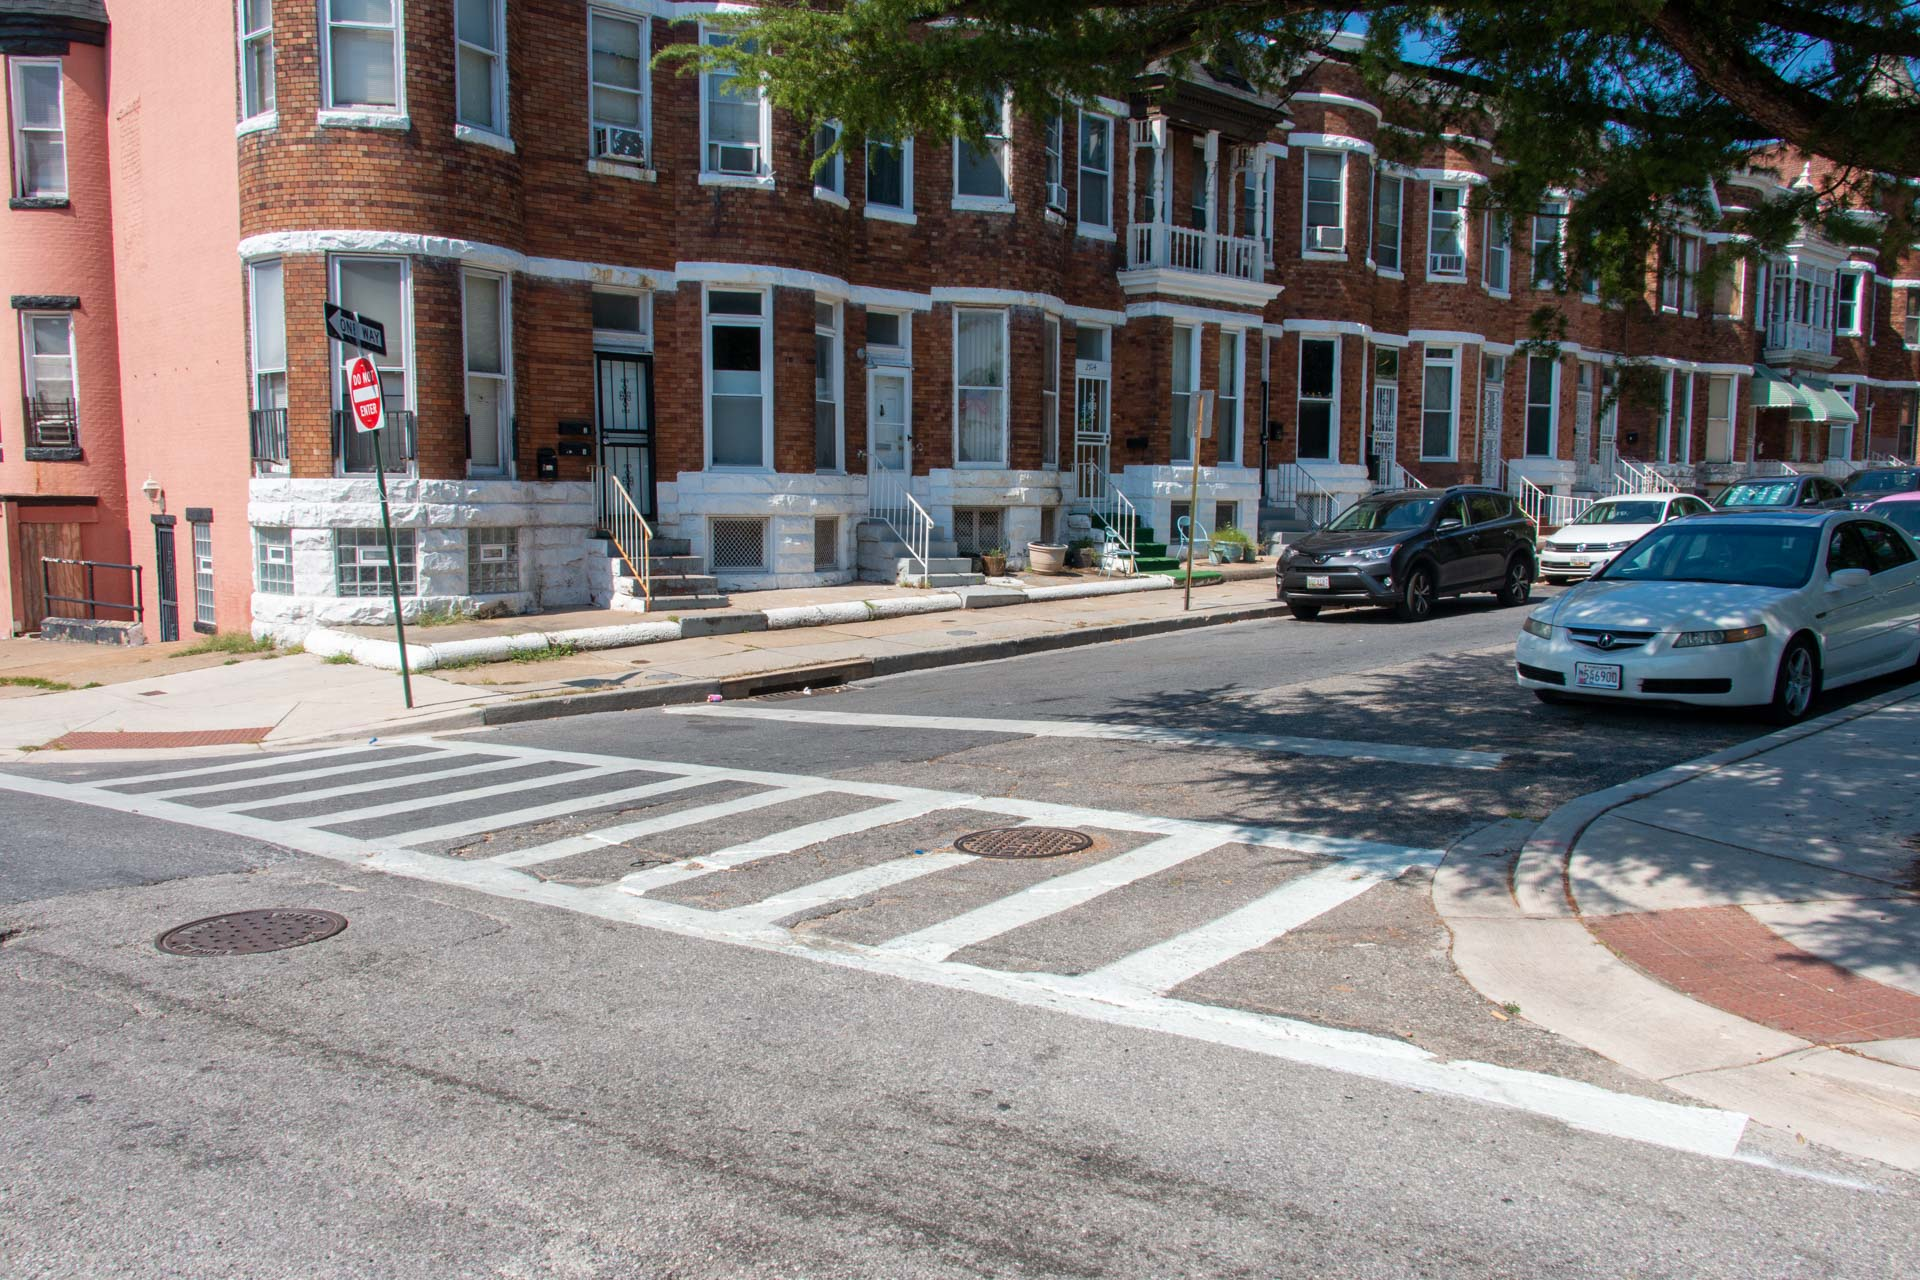 190904 South Auchentoroly Crosswalk after Fulton perspective